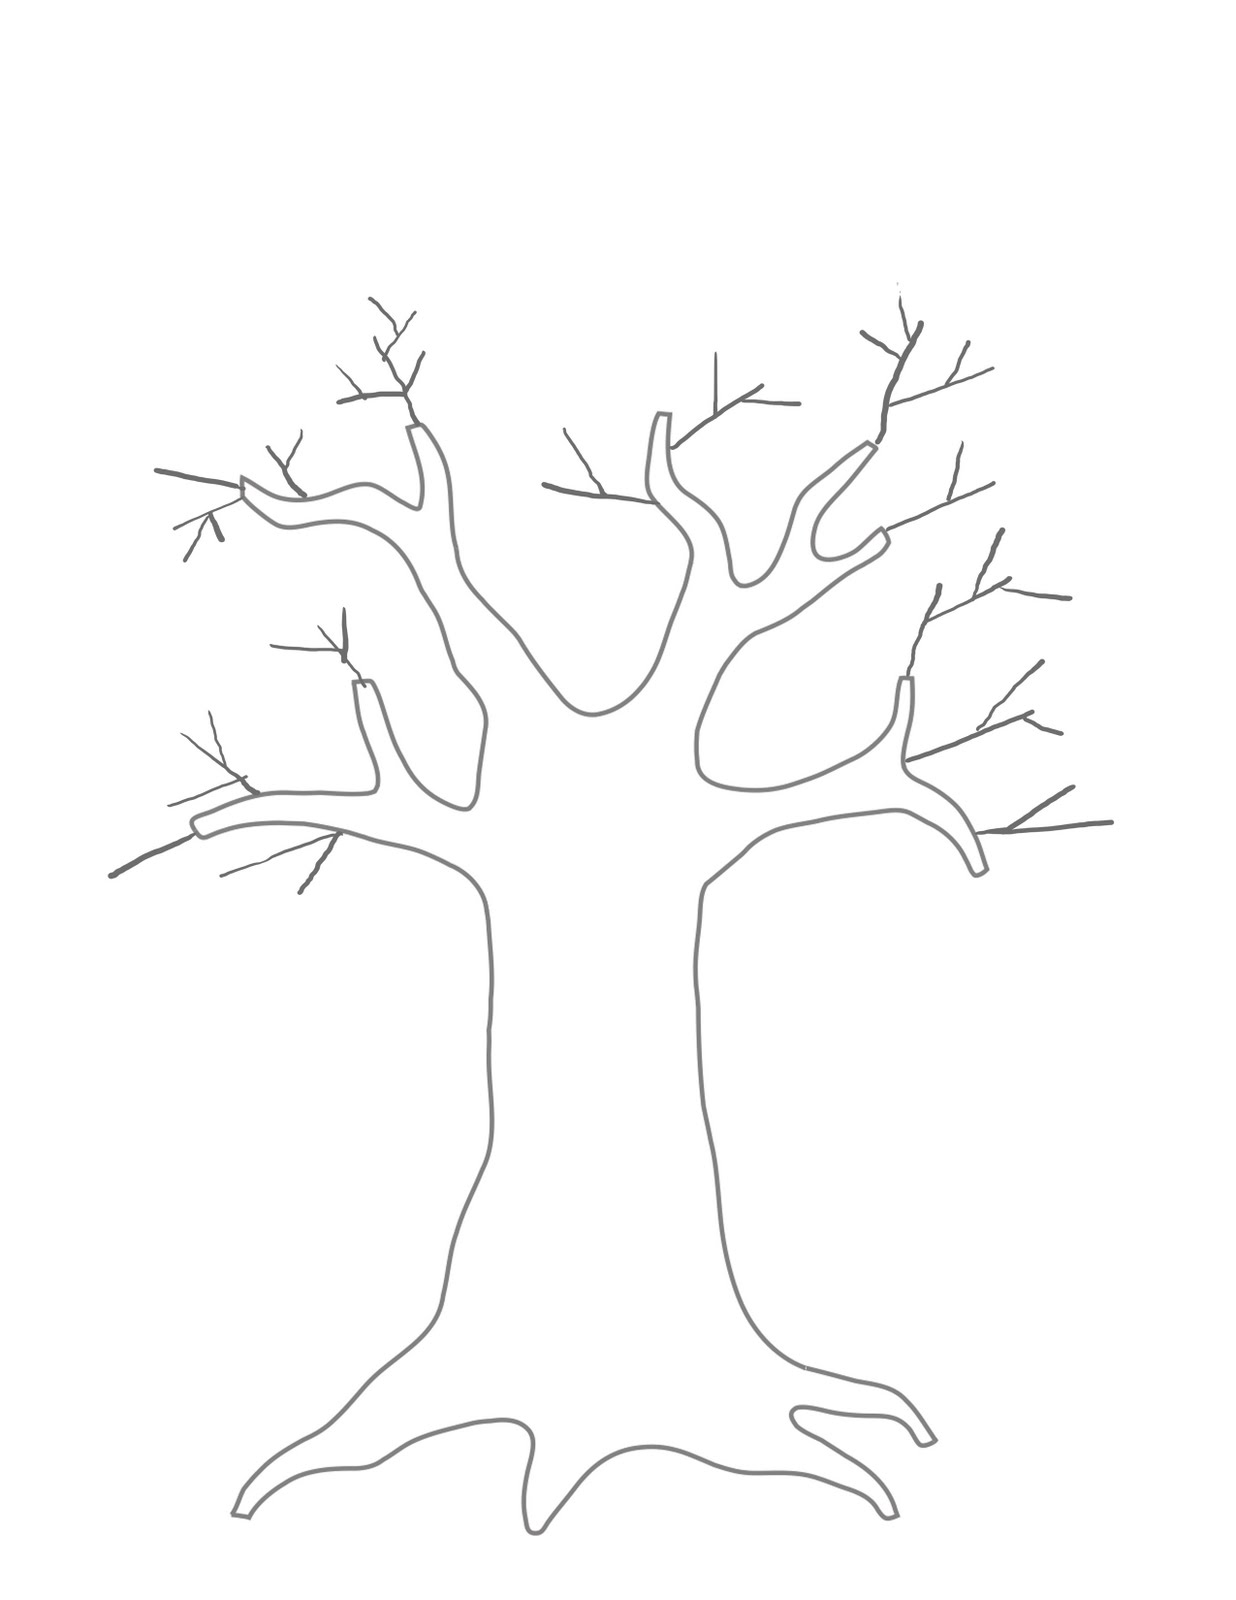 Tree Kid Drawing At Getdrawings Com Free For Personal Use Tree Kid